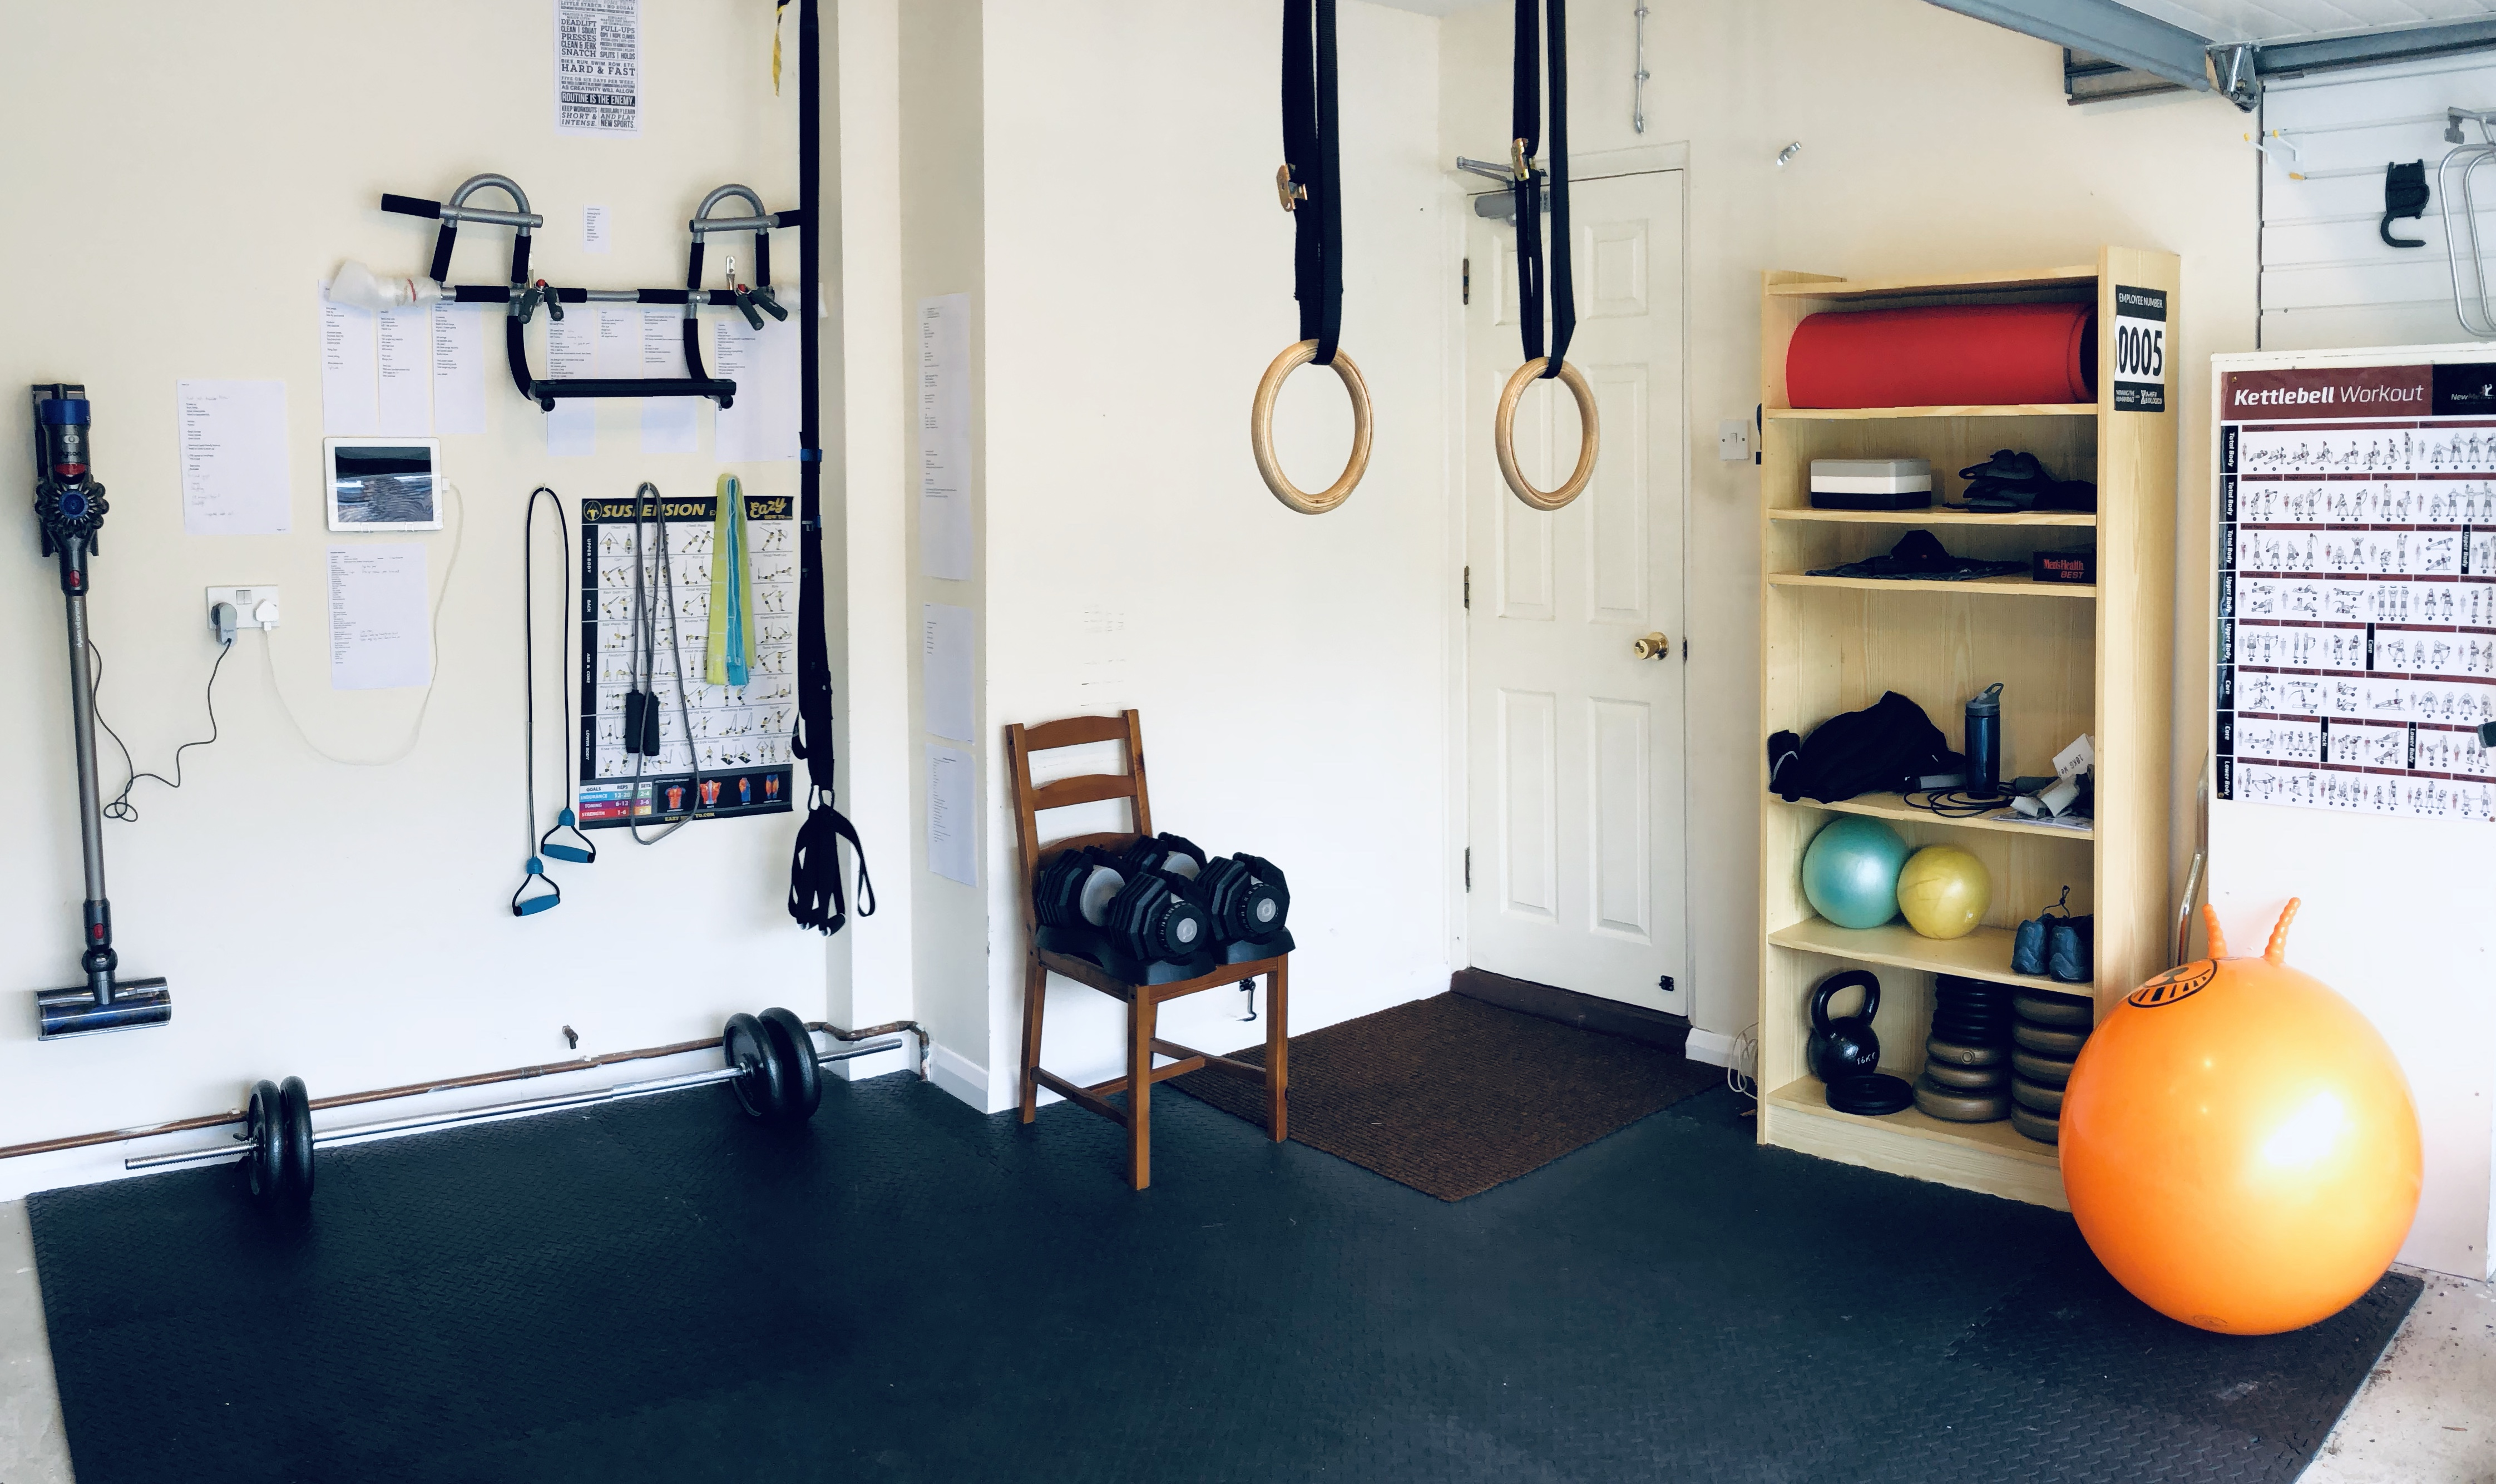 The stingy fitness fanatic's garage gym